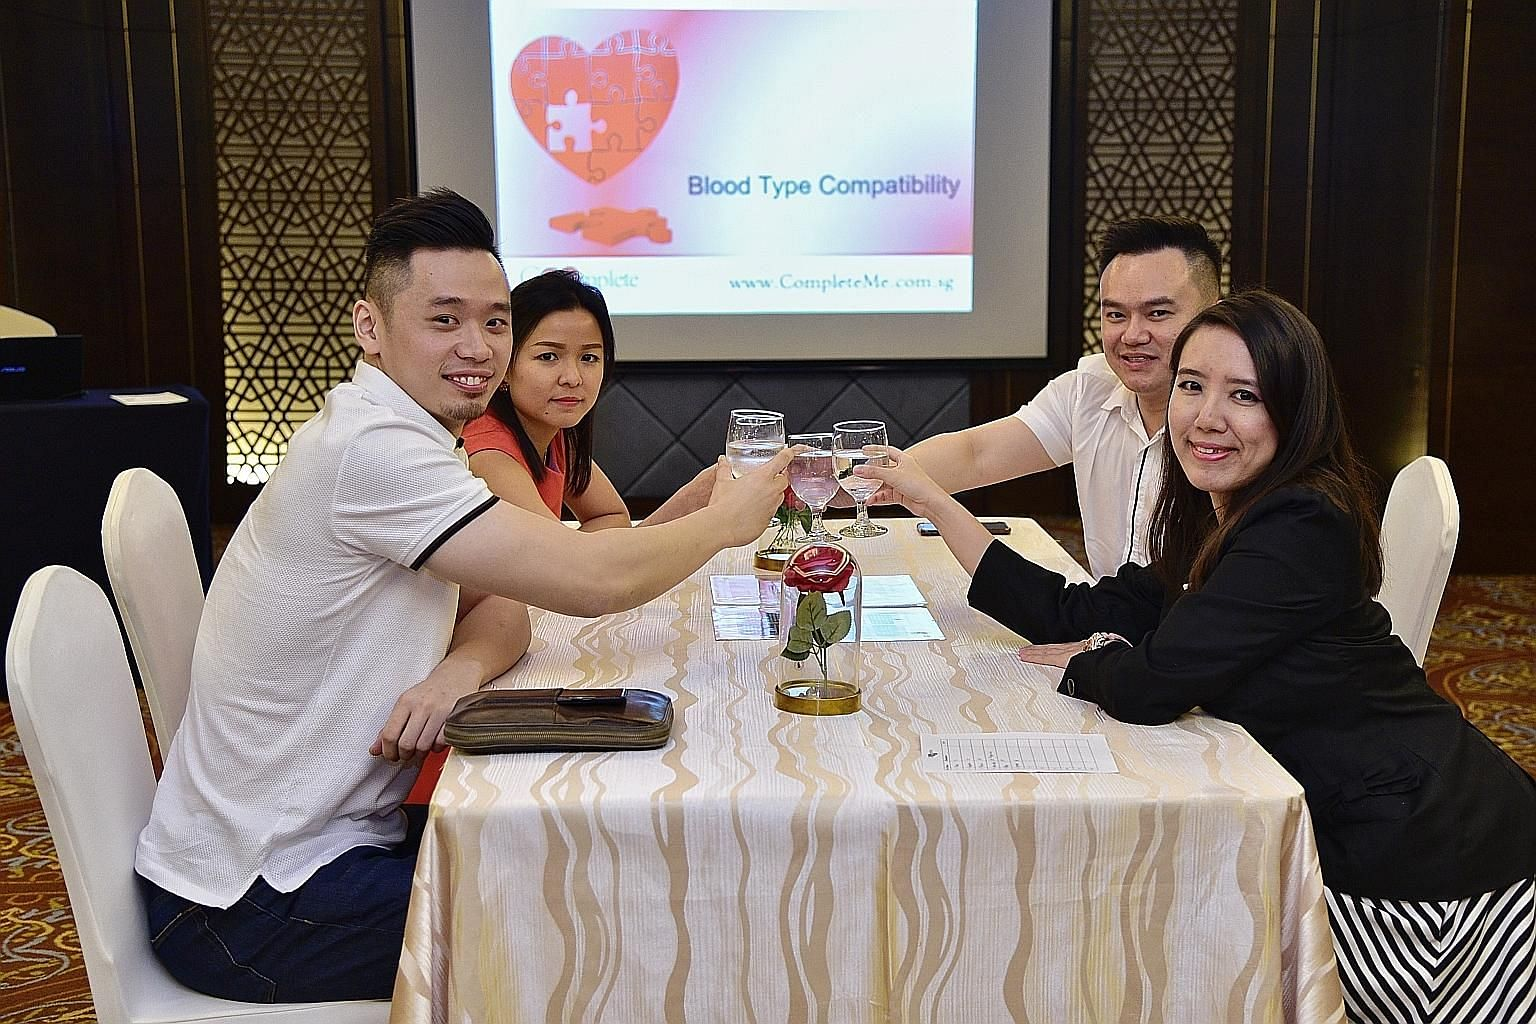 Singles taking part in a blood type dating event on Sept 20 at the Holiday Inn Singapore Orchard City Centre: (clockwise from left) Mr Travis Chia, an entrepreneur; Ms Cynthia Wong, an accountant; Mr Chin Wen Wei, an auditor; and Ms Felicia Cheng, a